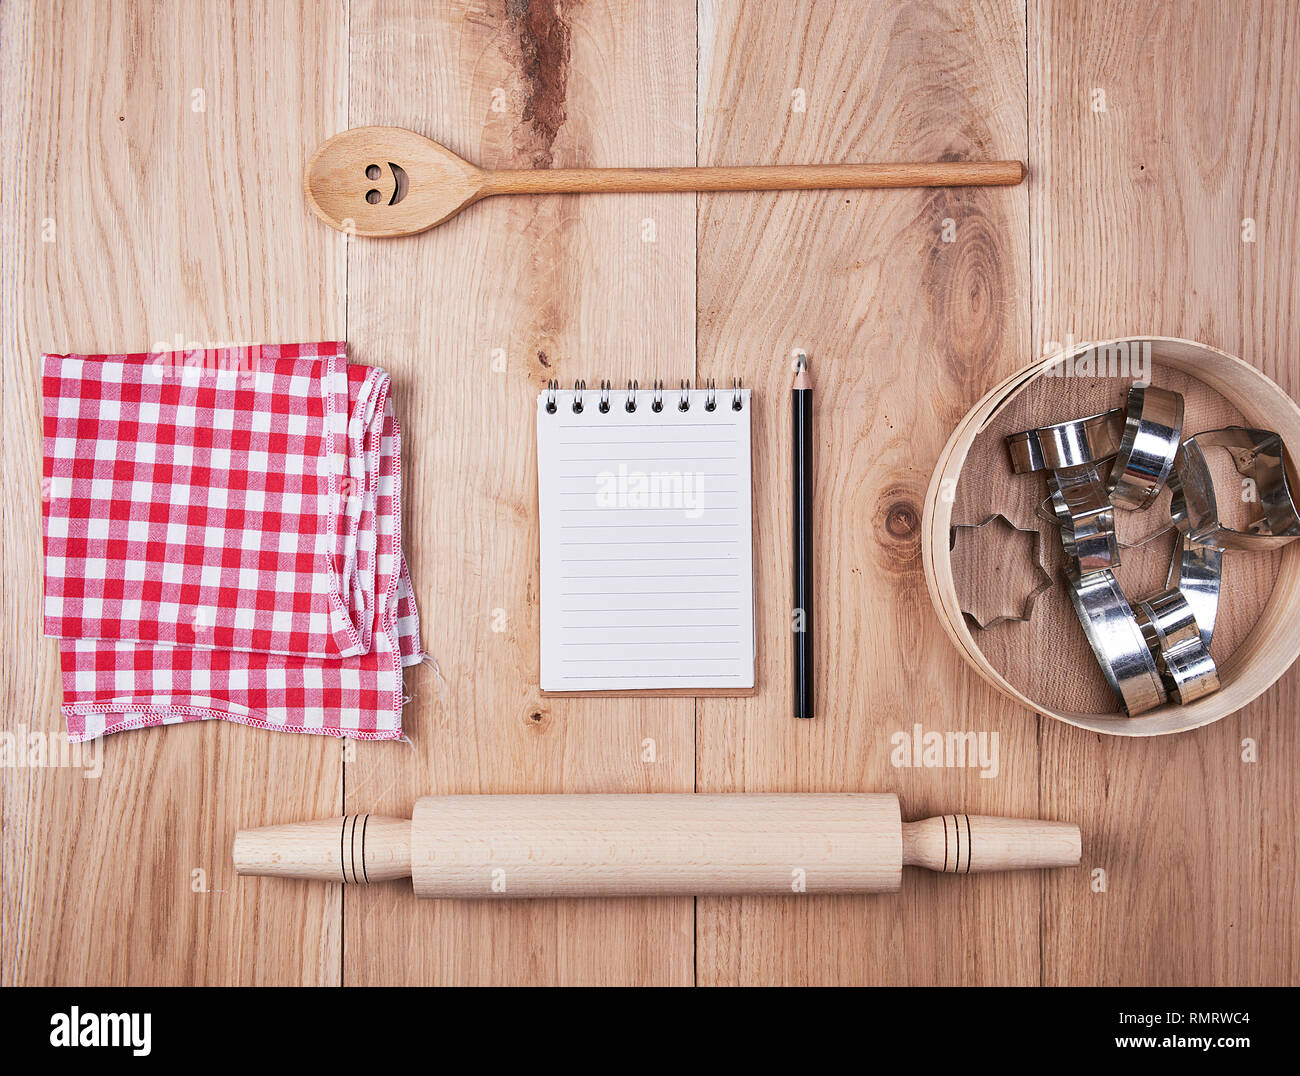 Blank Open Notebook In Line And Wooden Kitchen Accessories Recipe Concept Stock Photo Alamy